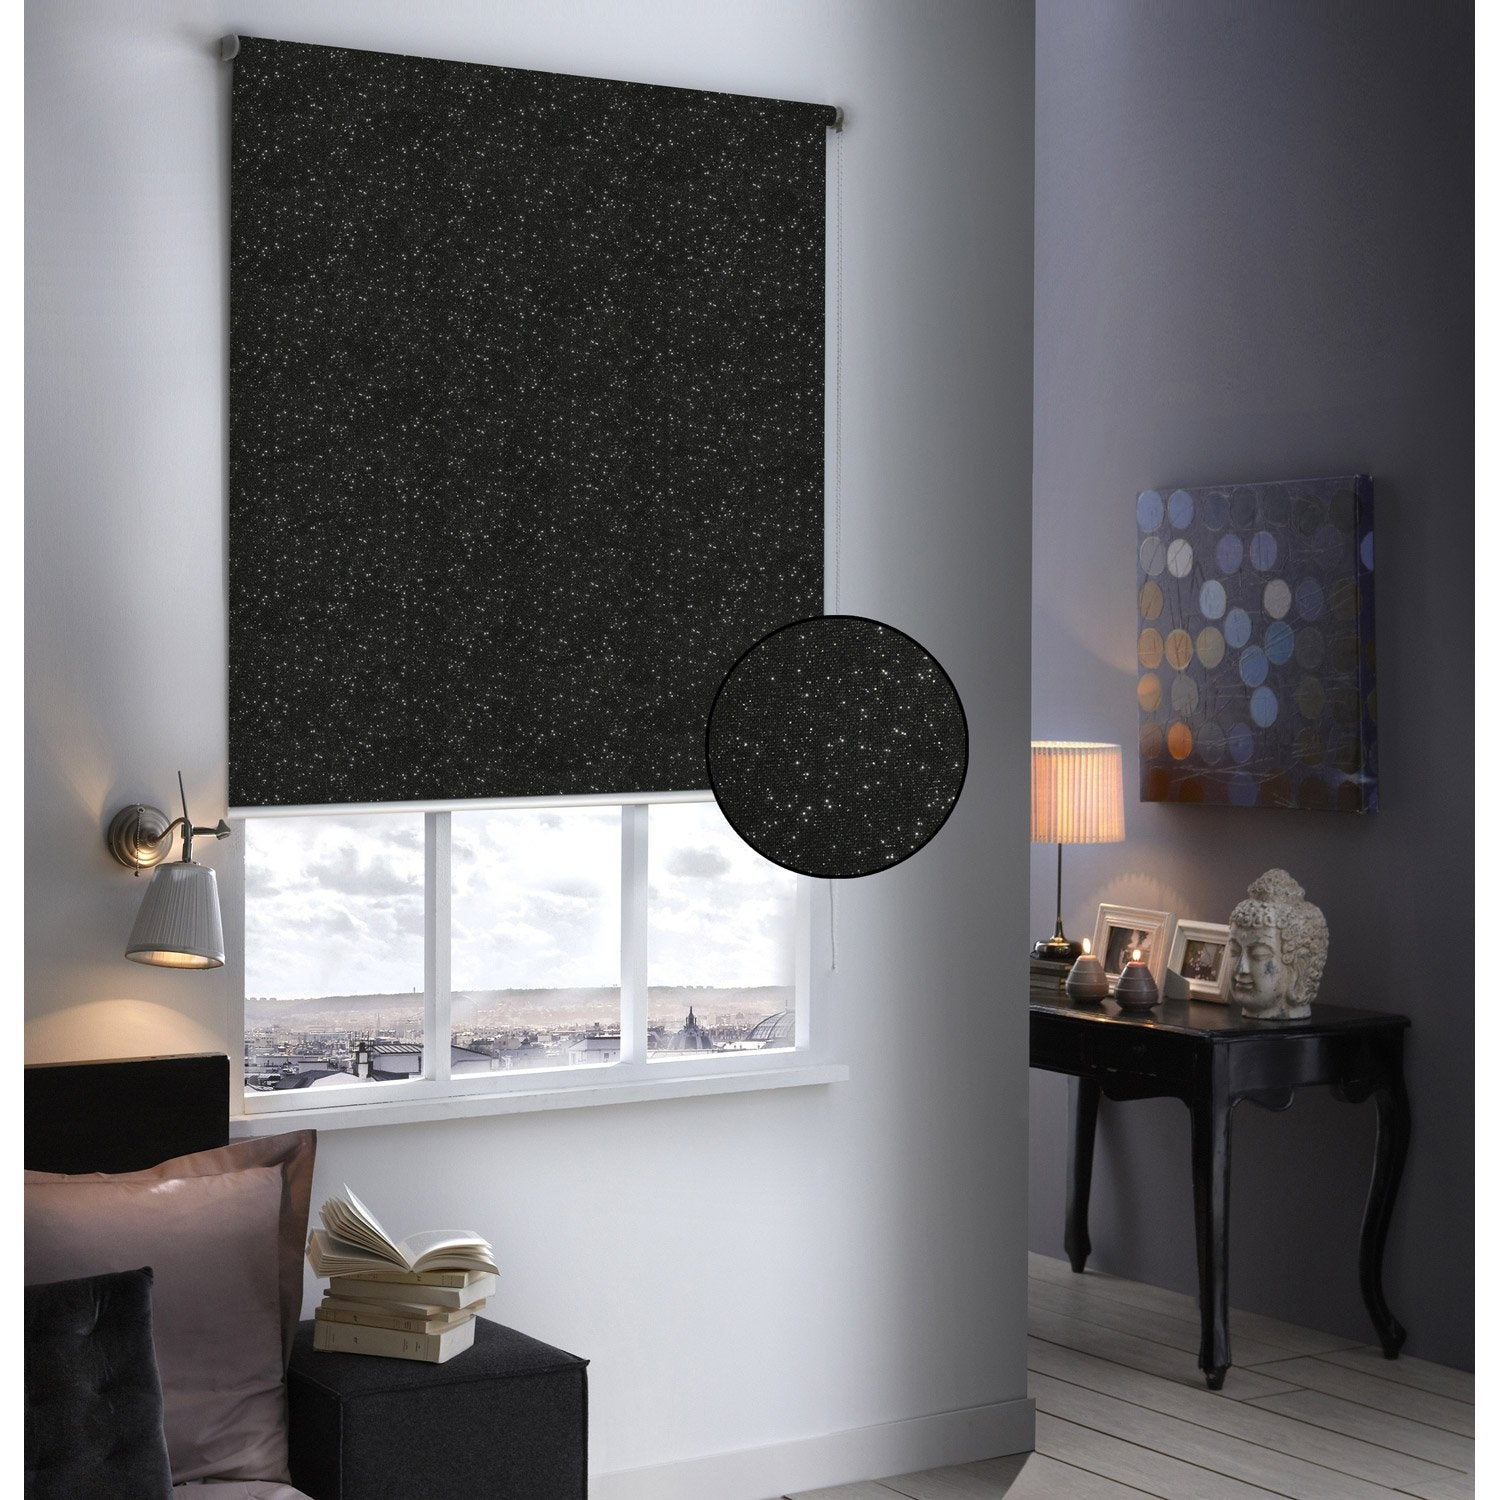 store enrouleur occultant paillettes noir paillet 154x190 cm leroy merlin. Black Bedroom Furniture Sets. Home Design Ideas